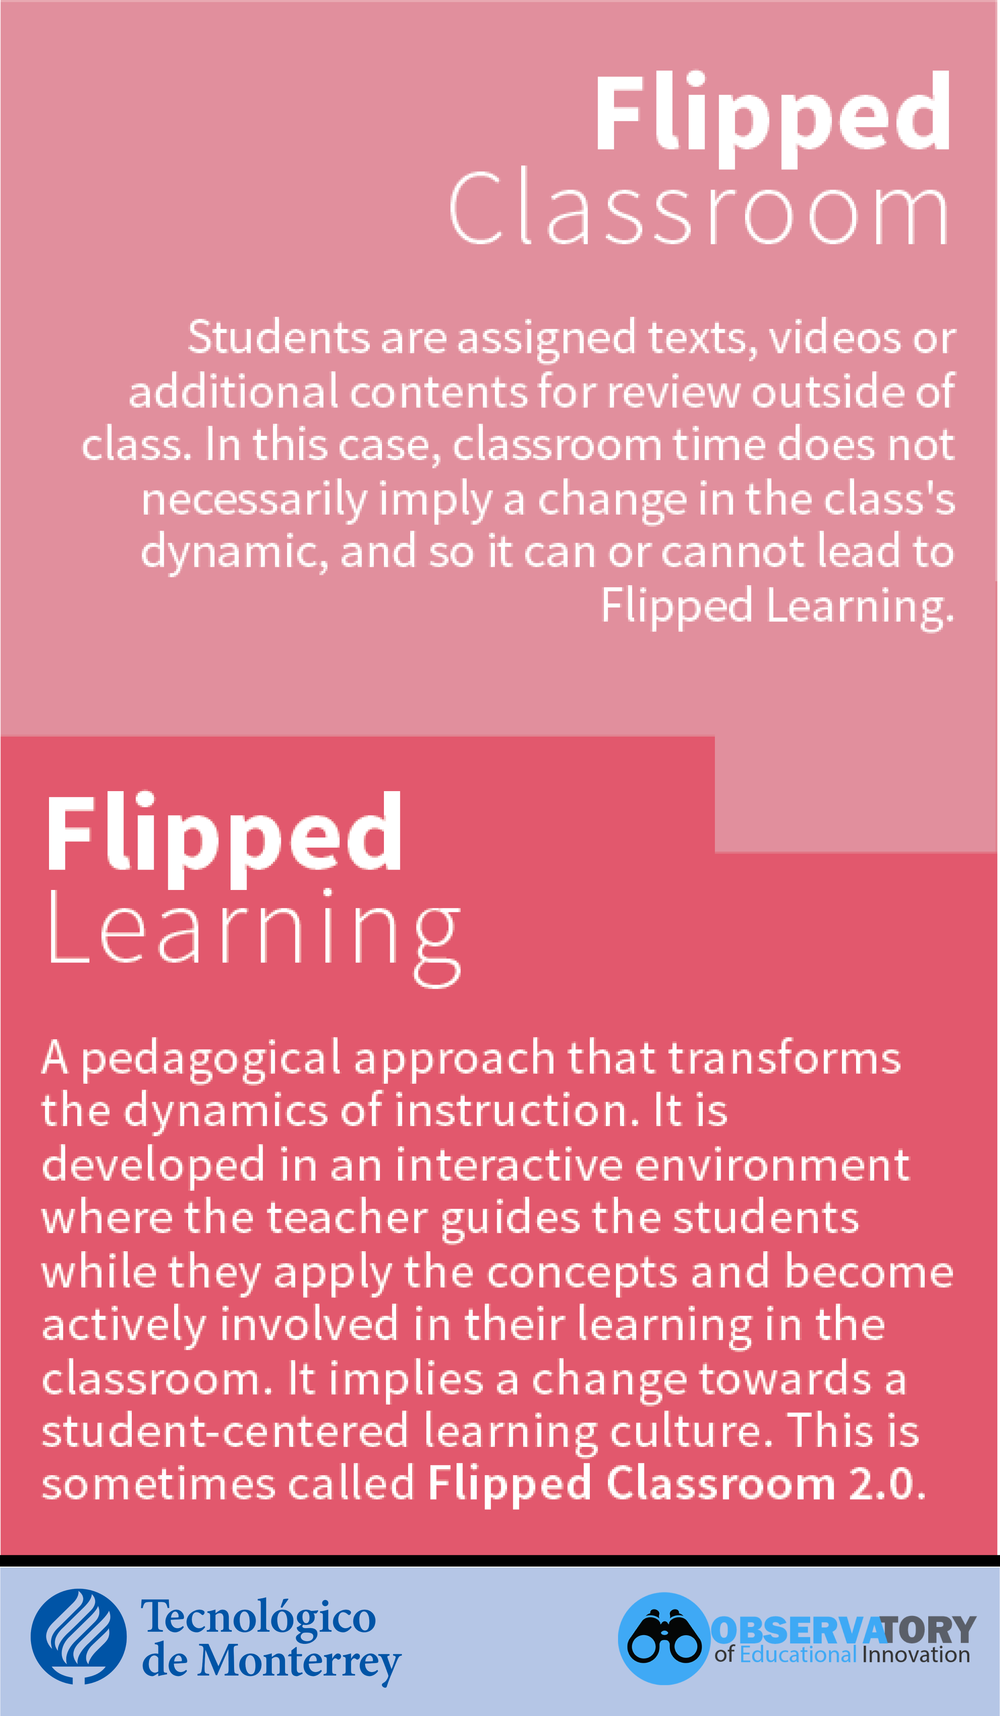 Flipped Classroom vs Flipped Learning